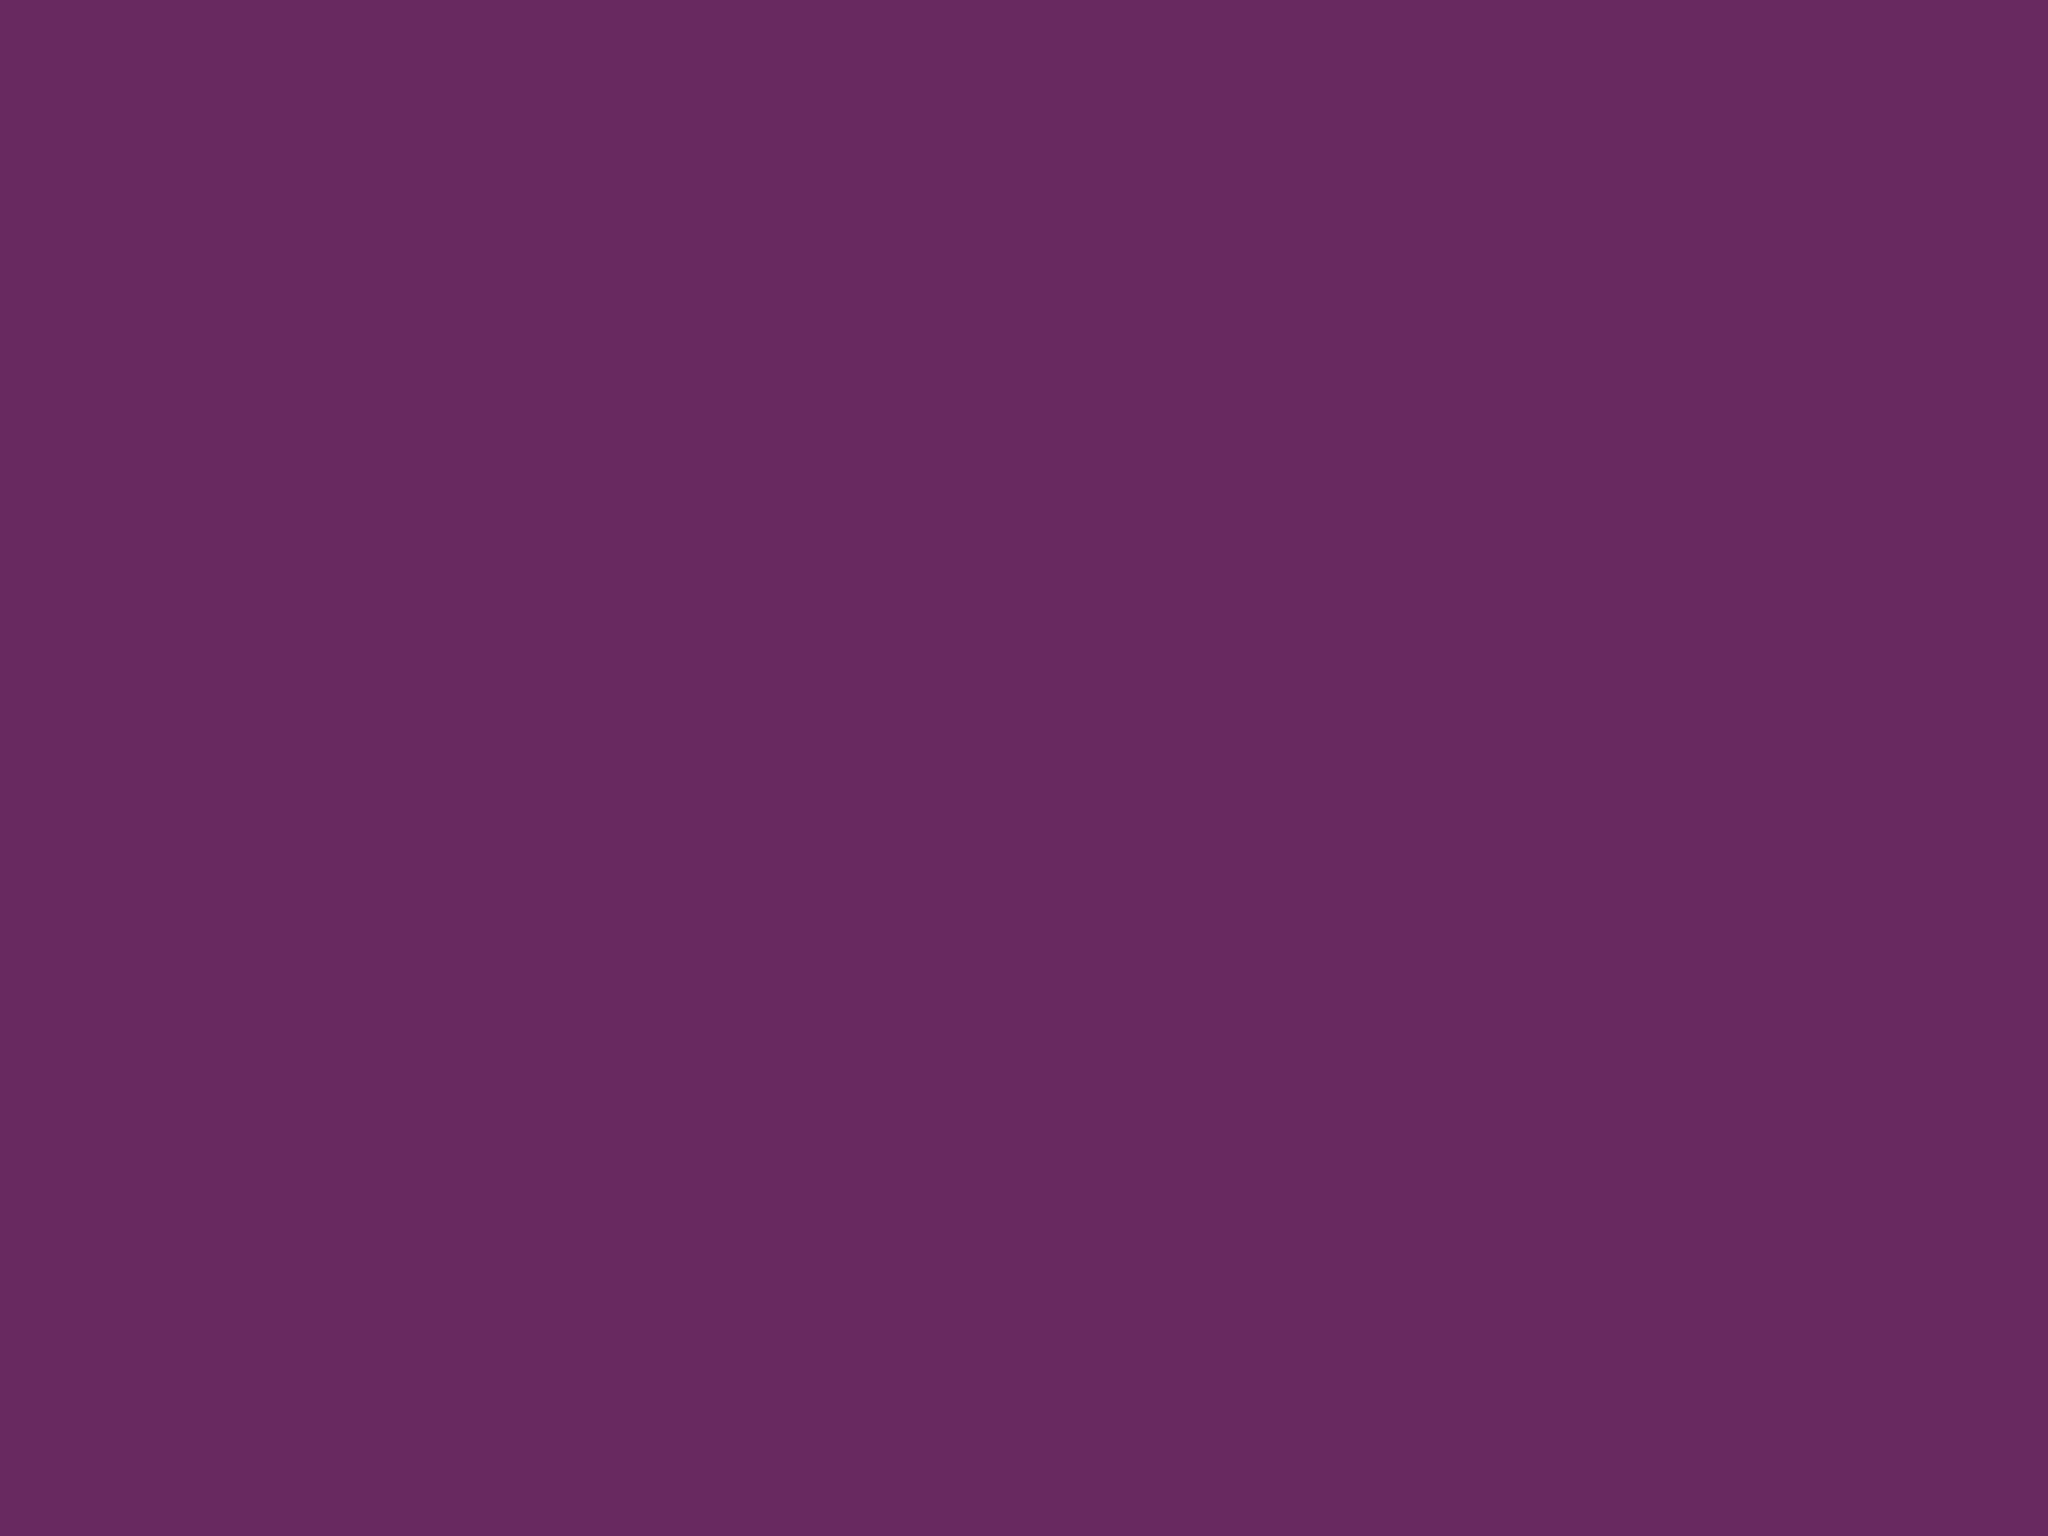 2048x1536 Palatinate Purple Solid Color Background